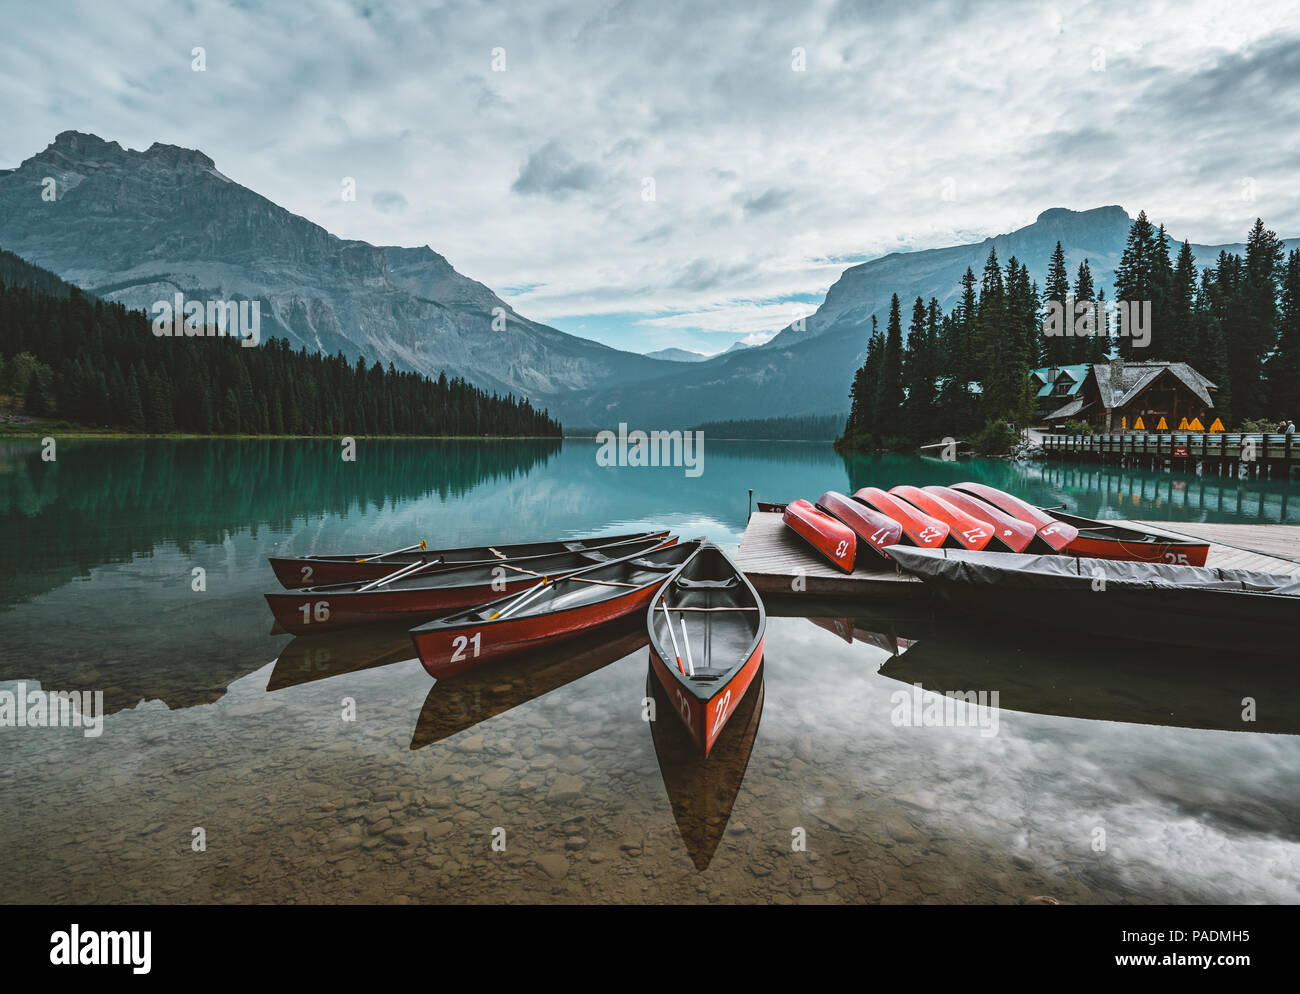 Red kayaks dry upside down. Emerald Lake in Canadian Rockies with mountains and trees and refelction. Concept of active vacation and tourism - Stock Image